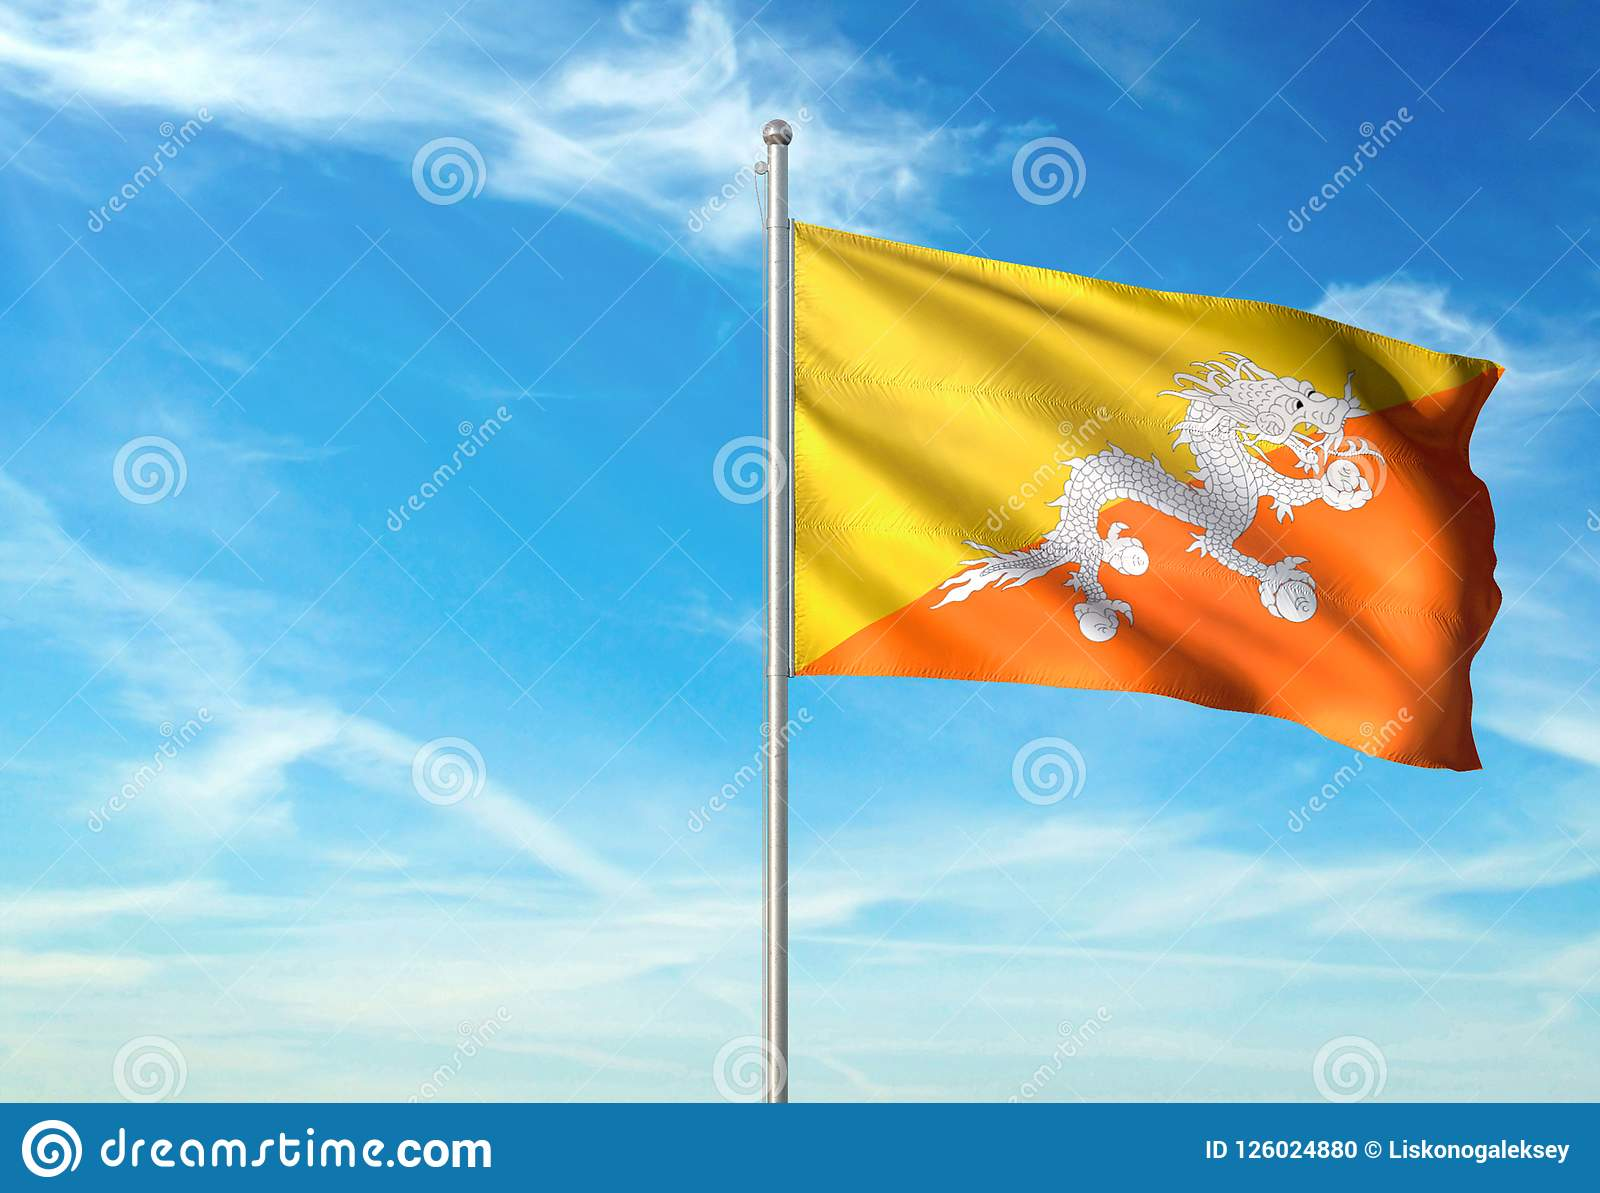 Bhutan Flag Waving With Sky On Background Realistic 3d